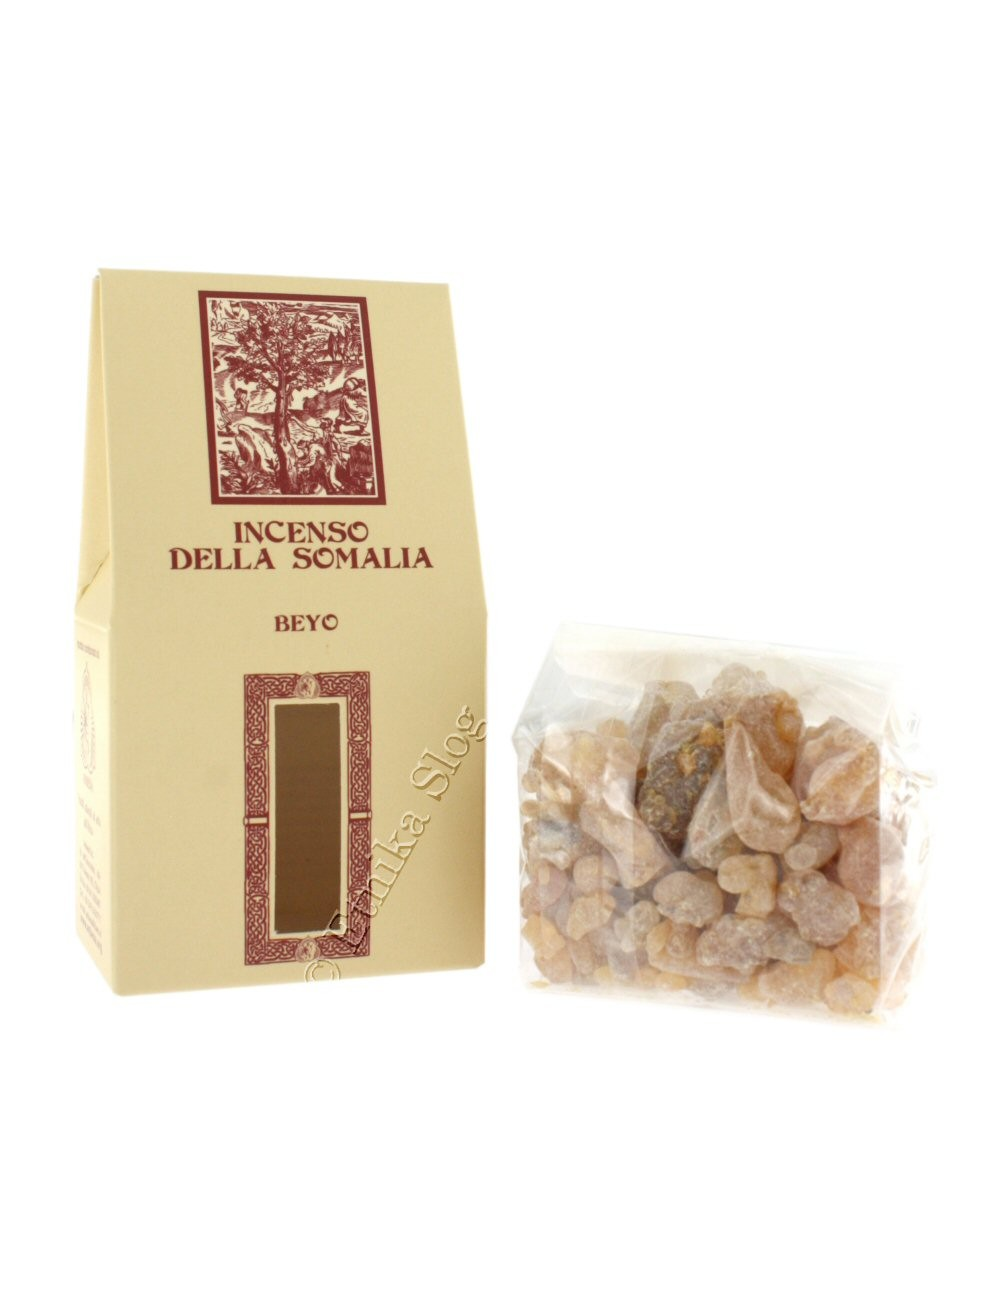 INCENSE IN GRAINS INC-GR02-01 - Oriente Import S.r.l.